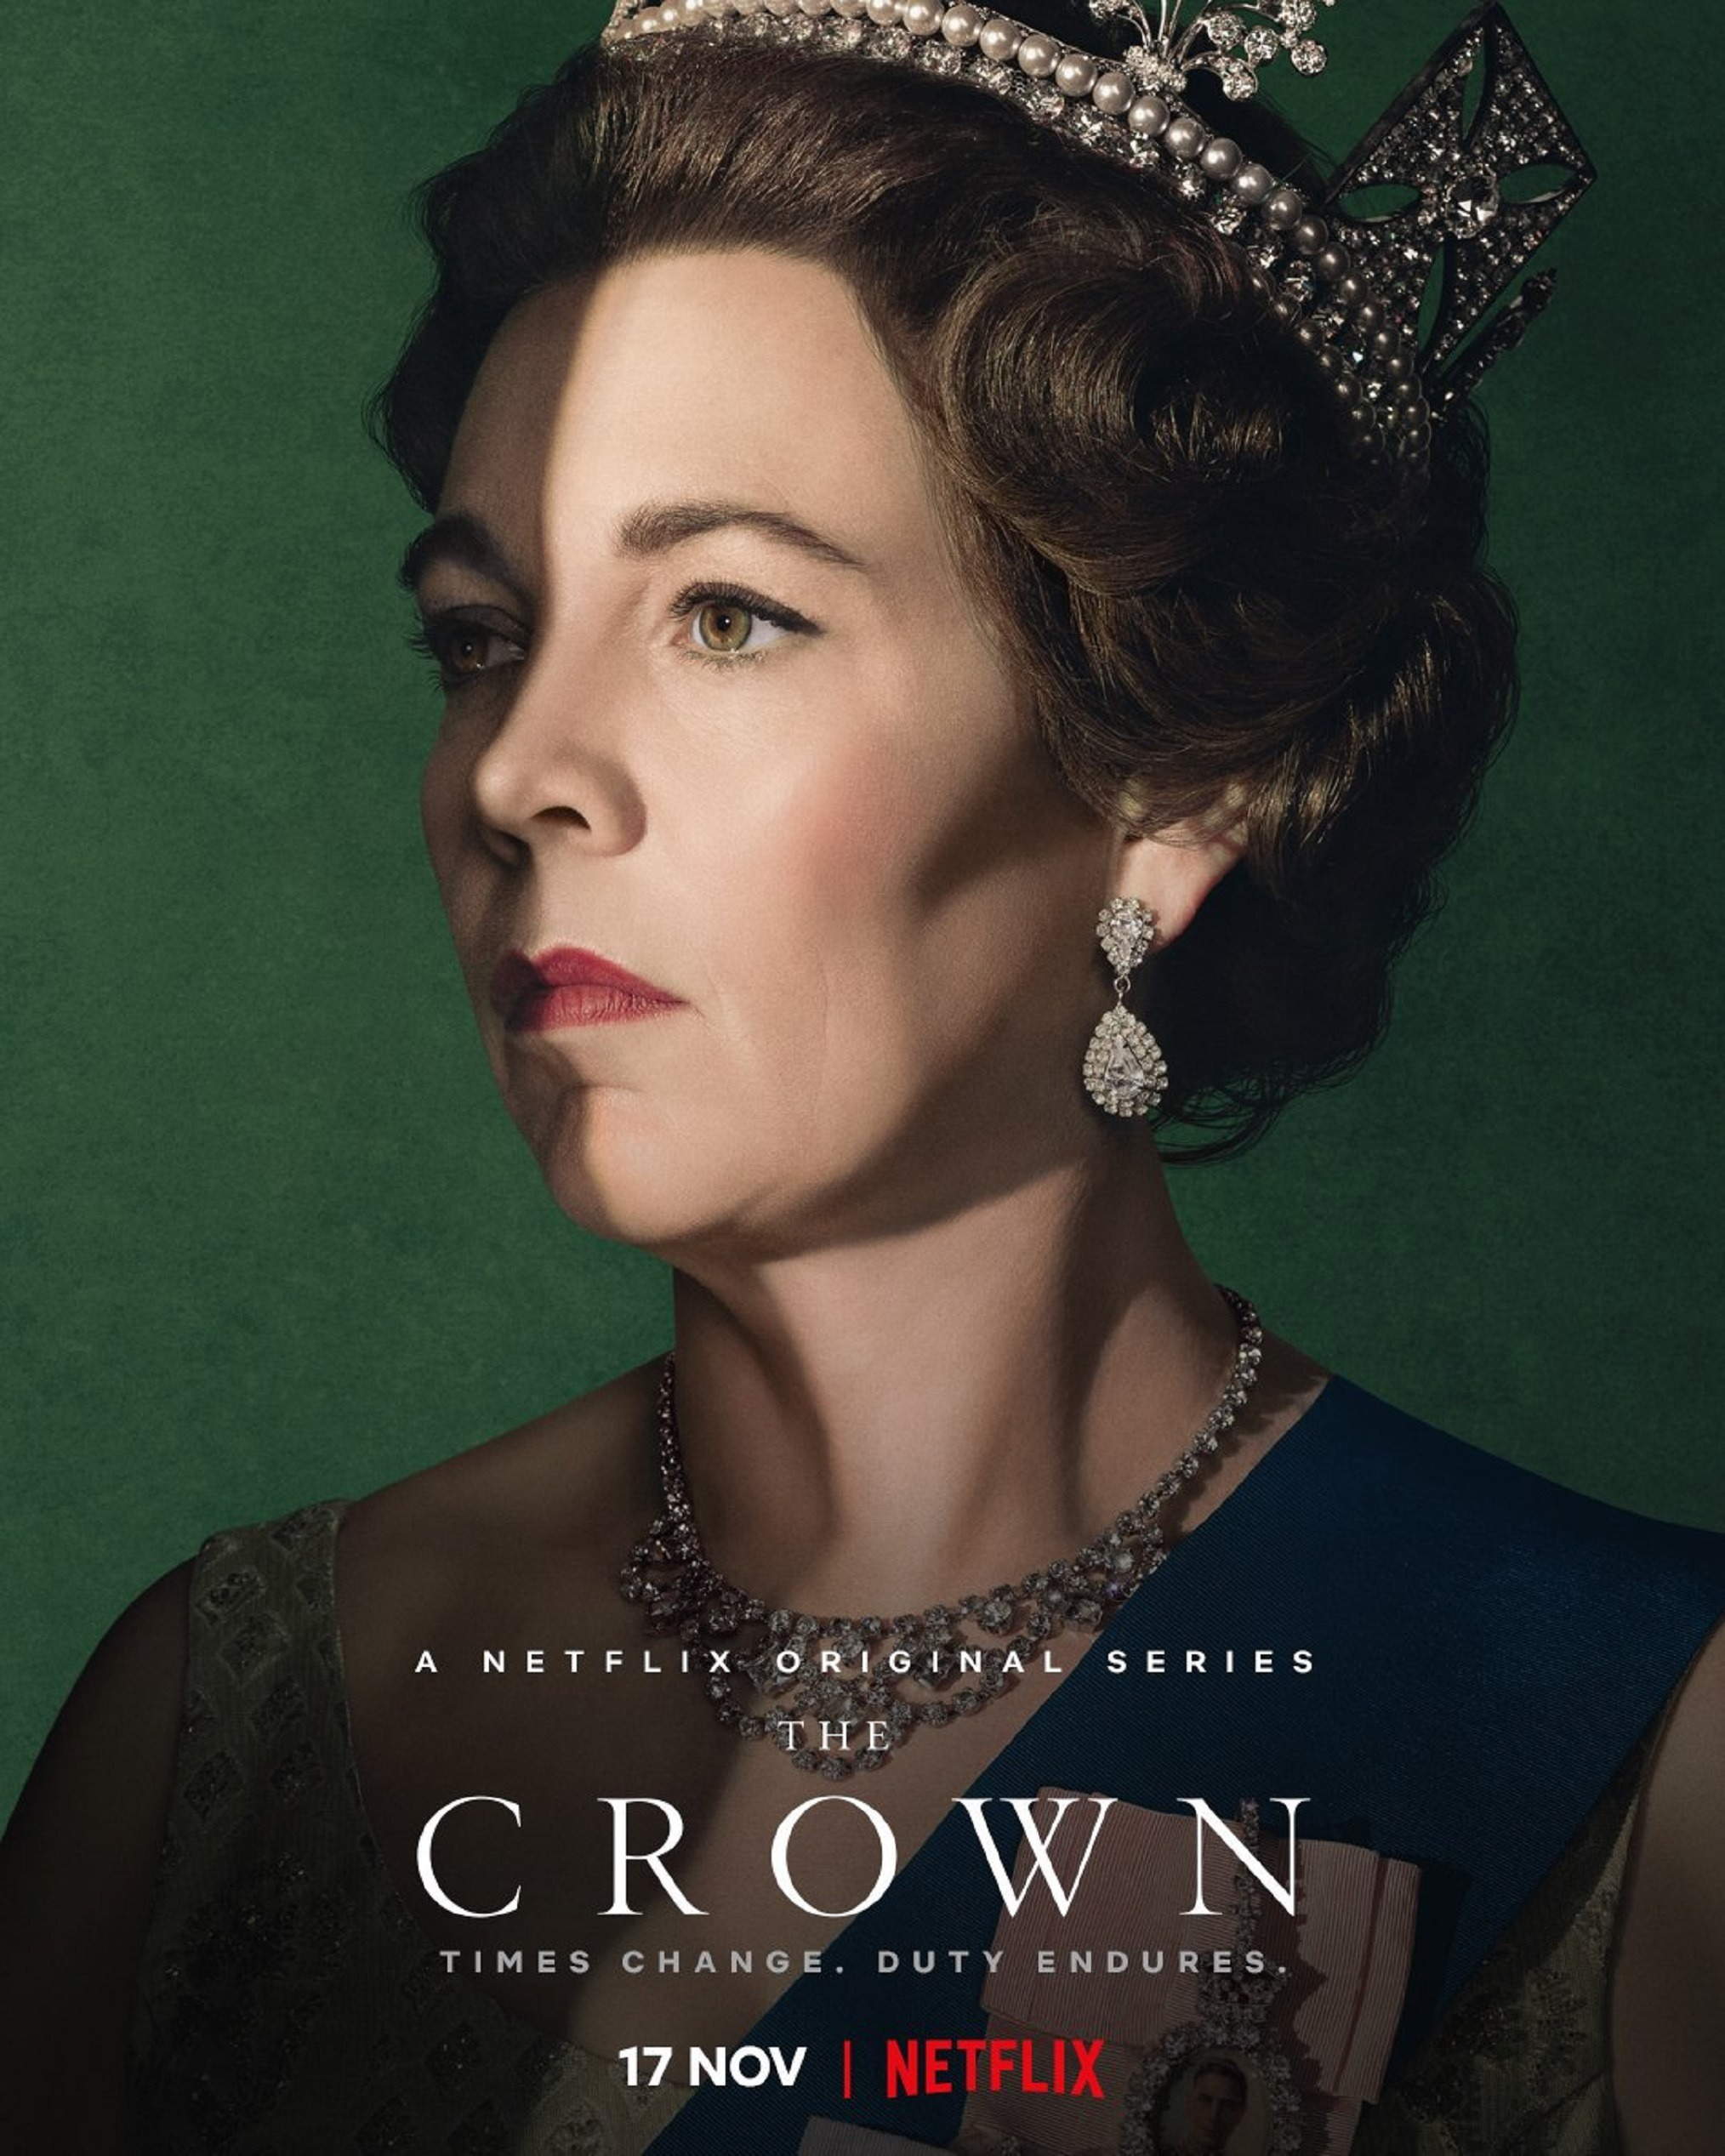 Netflix The Crown Season 3 Character Posters Olivia Colman as Queen Elizabeth II